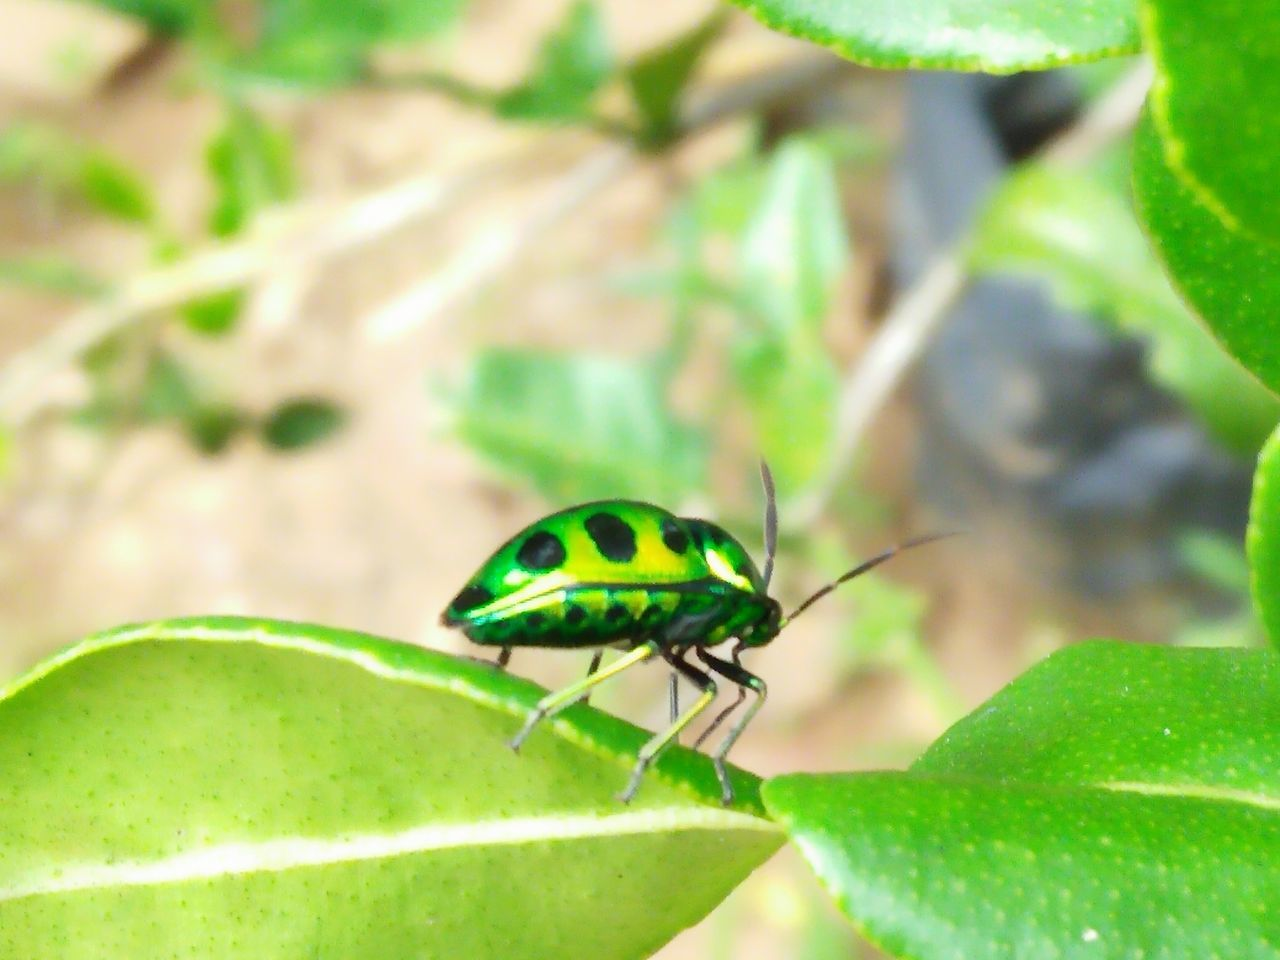 green color, leaf, insect, animals in the wild, animal themes, one animal, plant, close-up, day, nature, animal wildlife, no people, growth, outdoors, grass